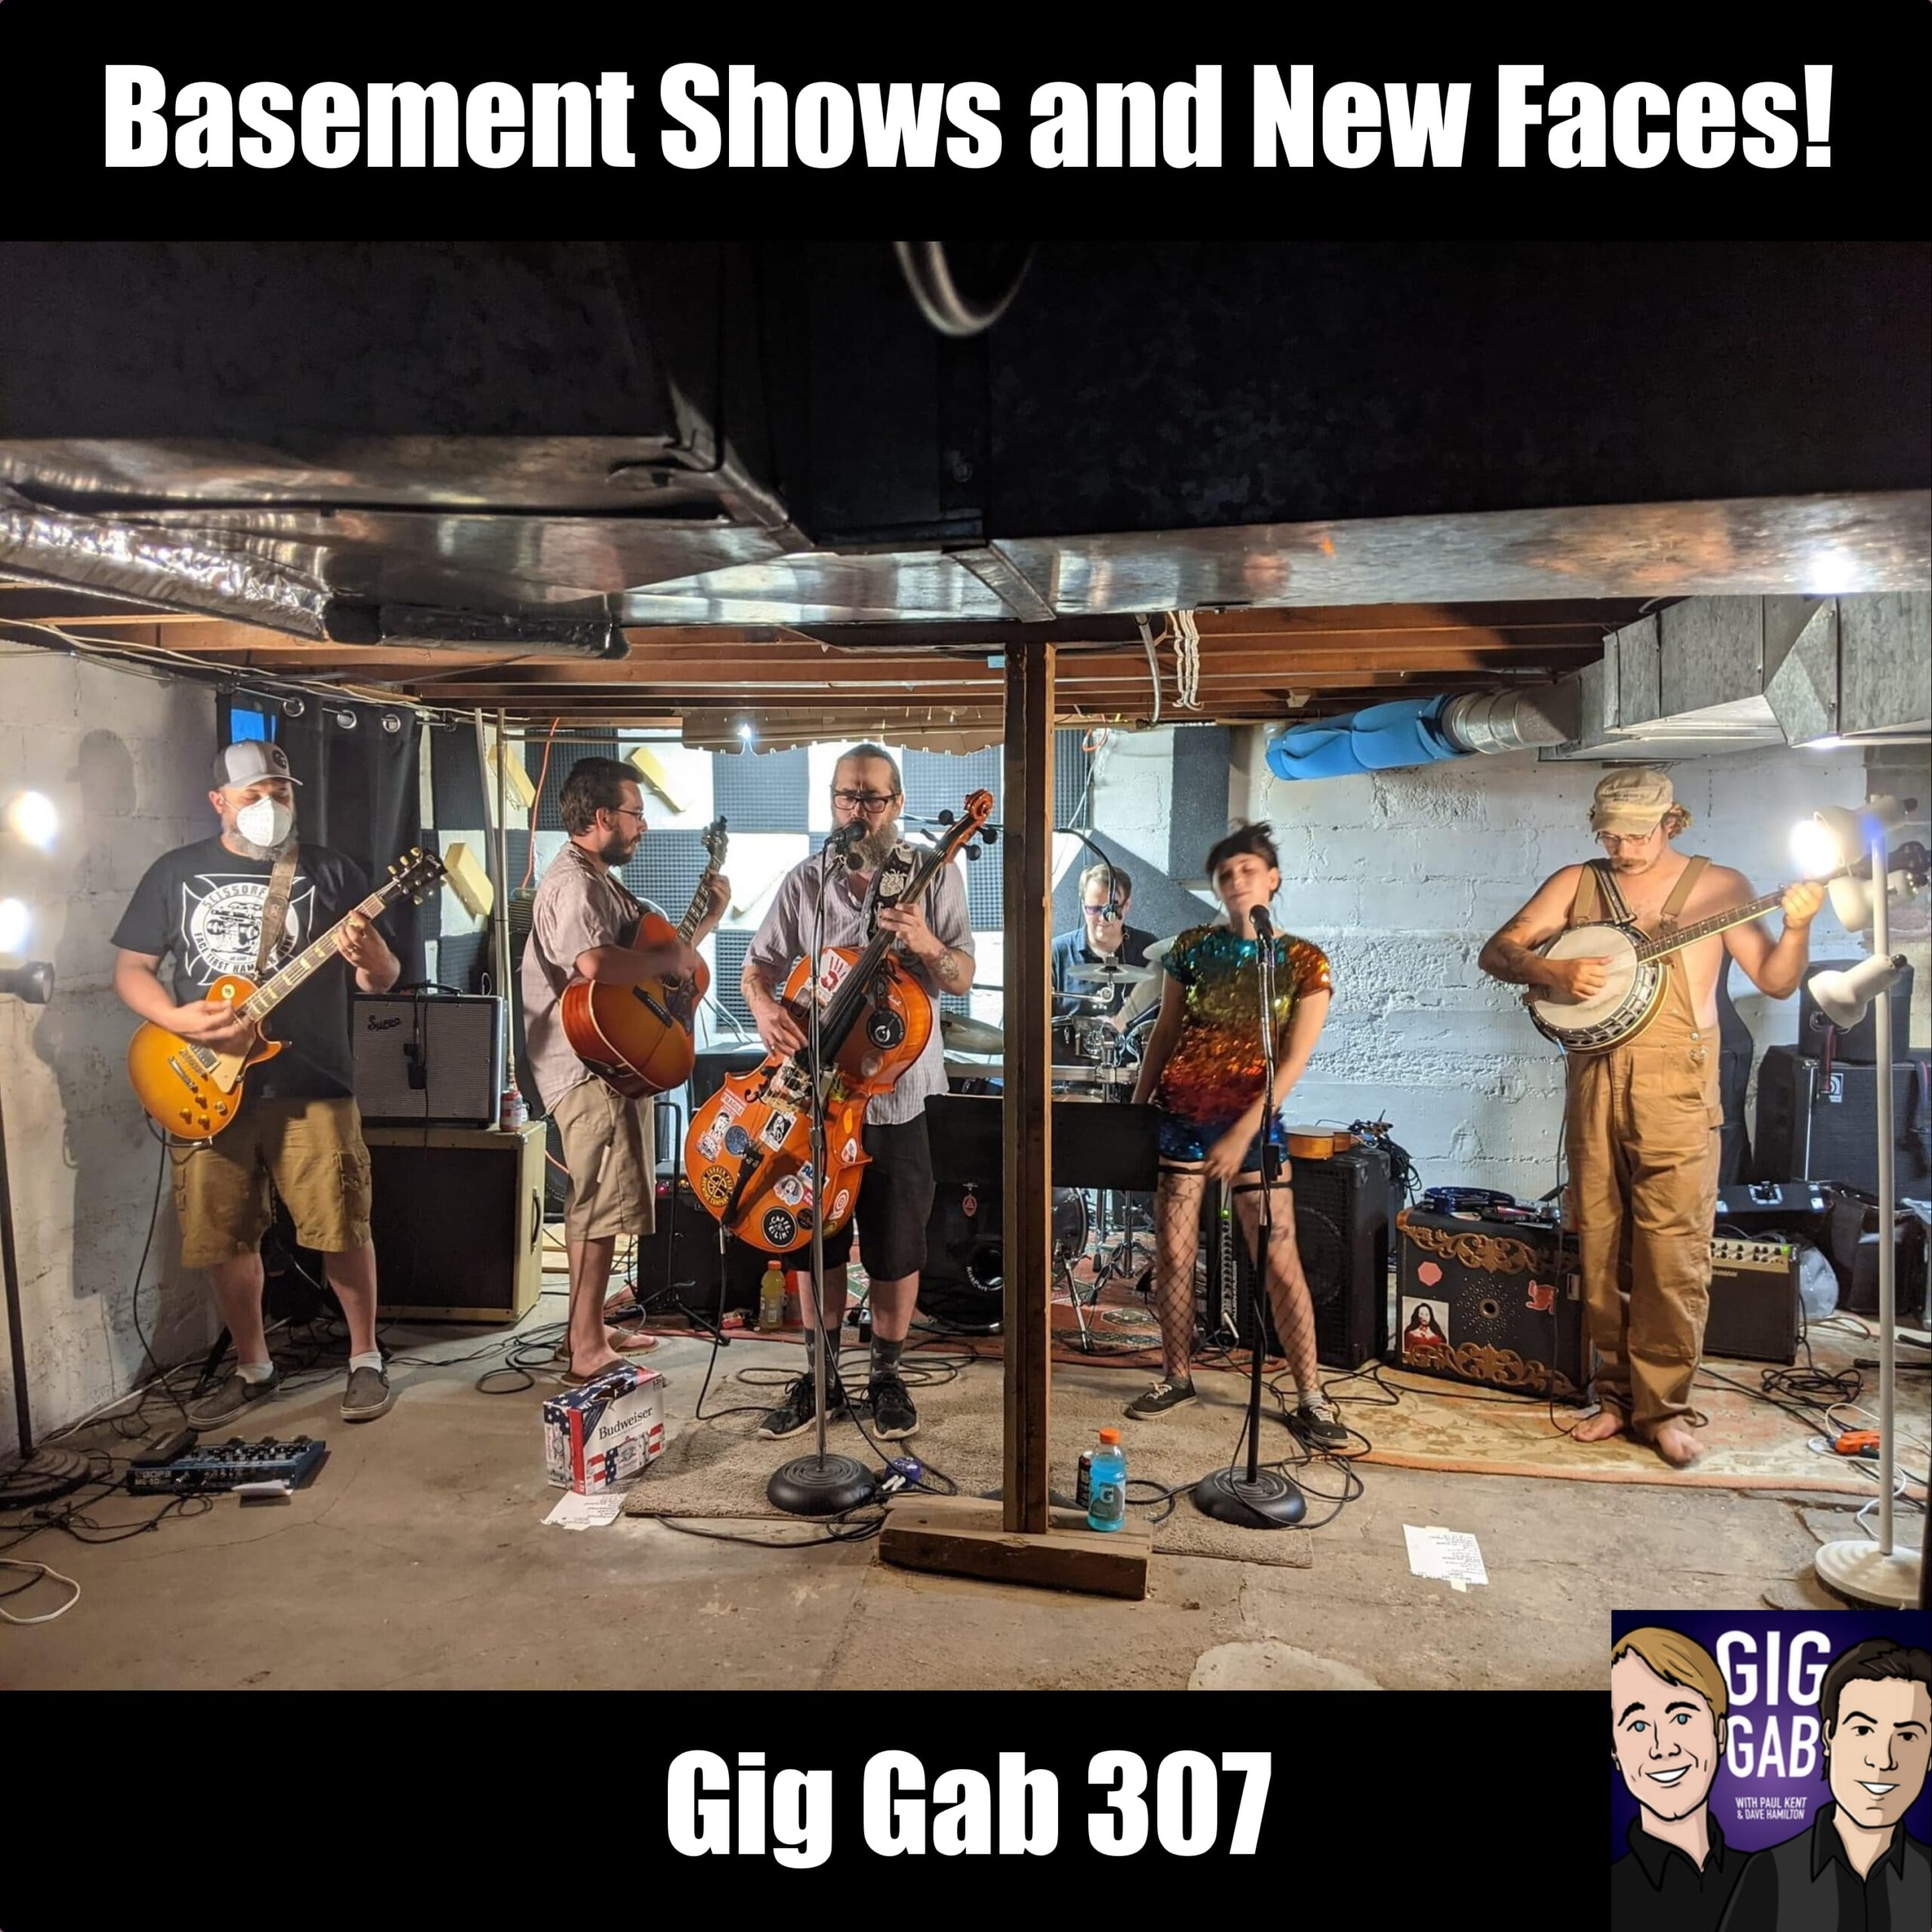 Basement Shows and New Faces —Gig Gab 307 episode image